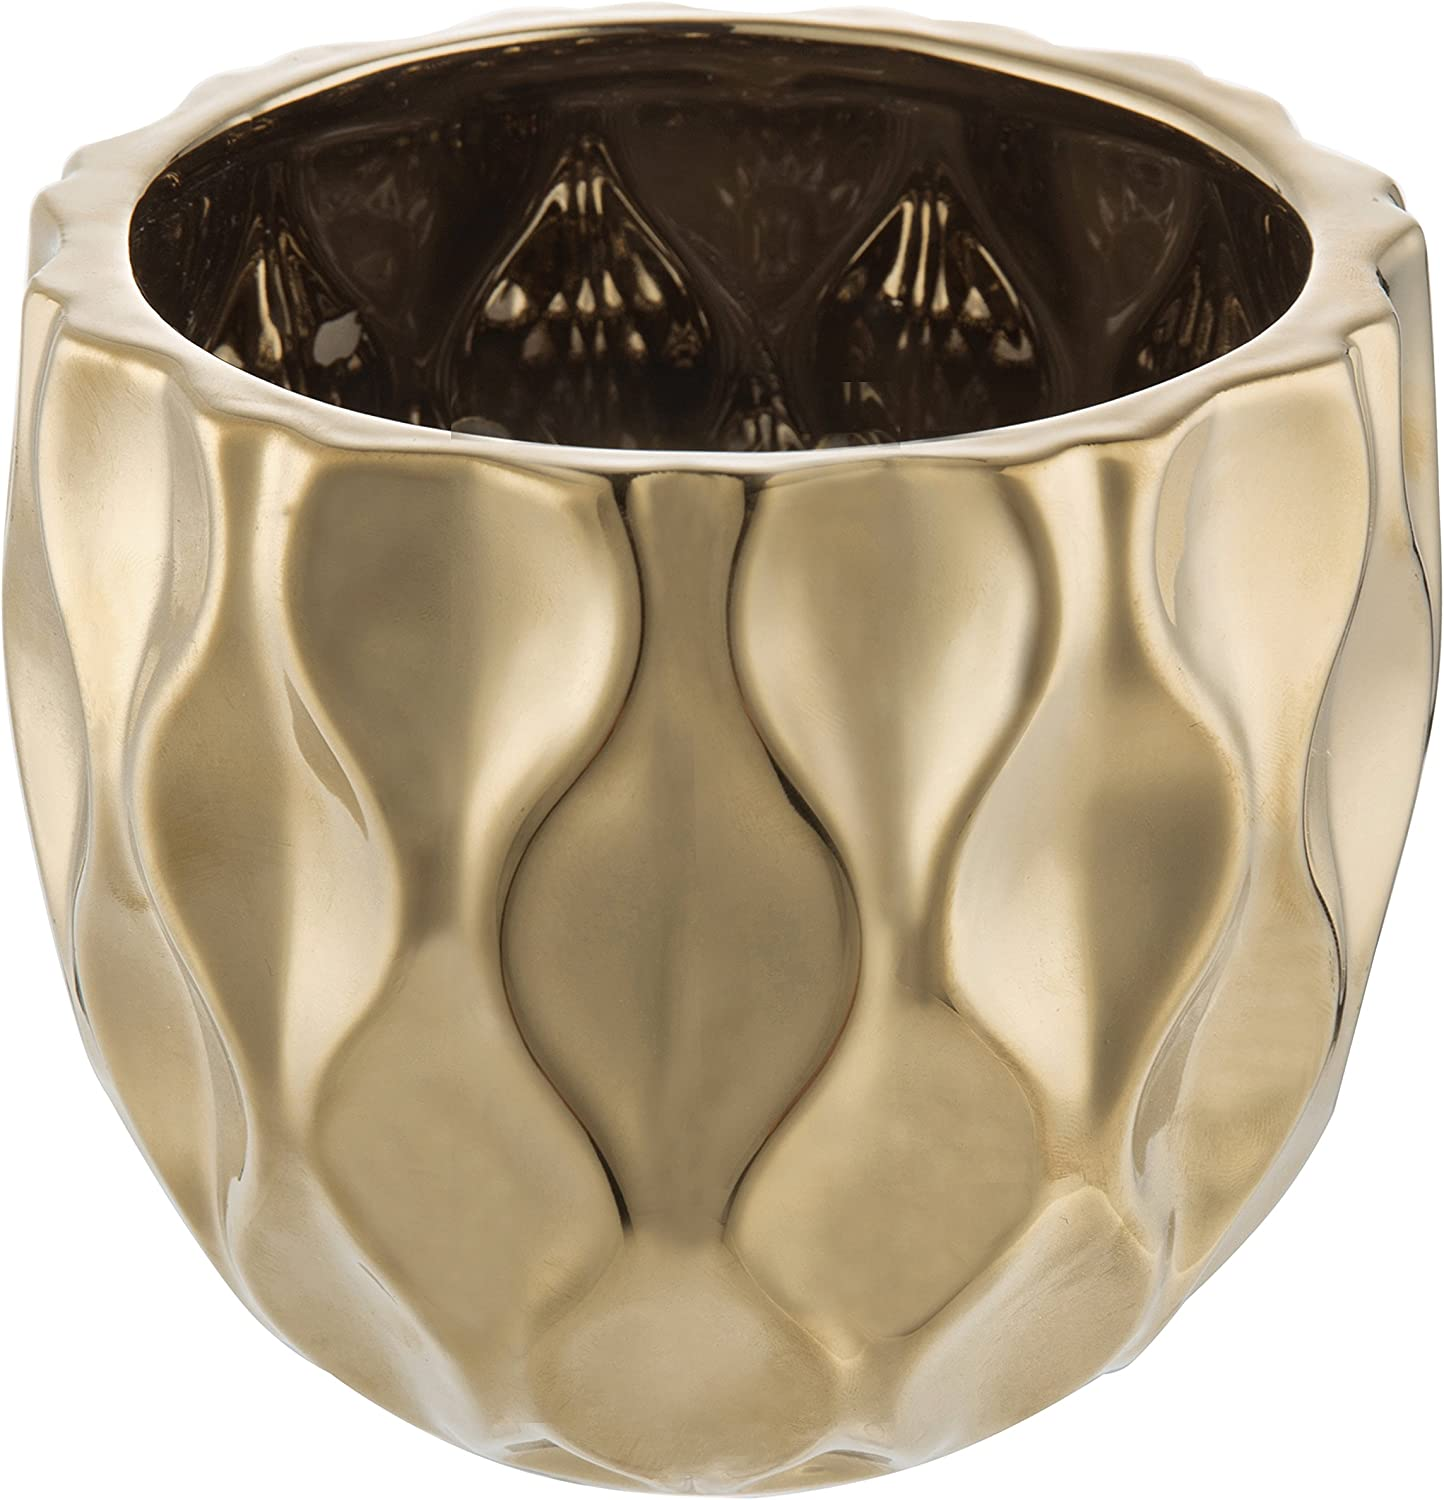 MyGift 6-Inch Modern Ceramic Planter with Metallic Gold-Tone Finish